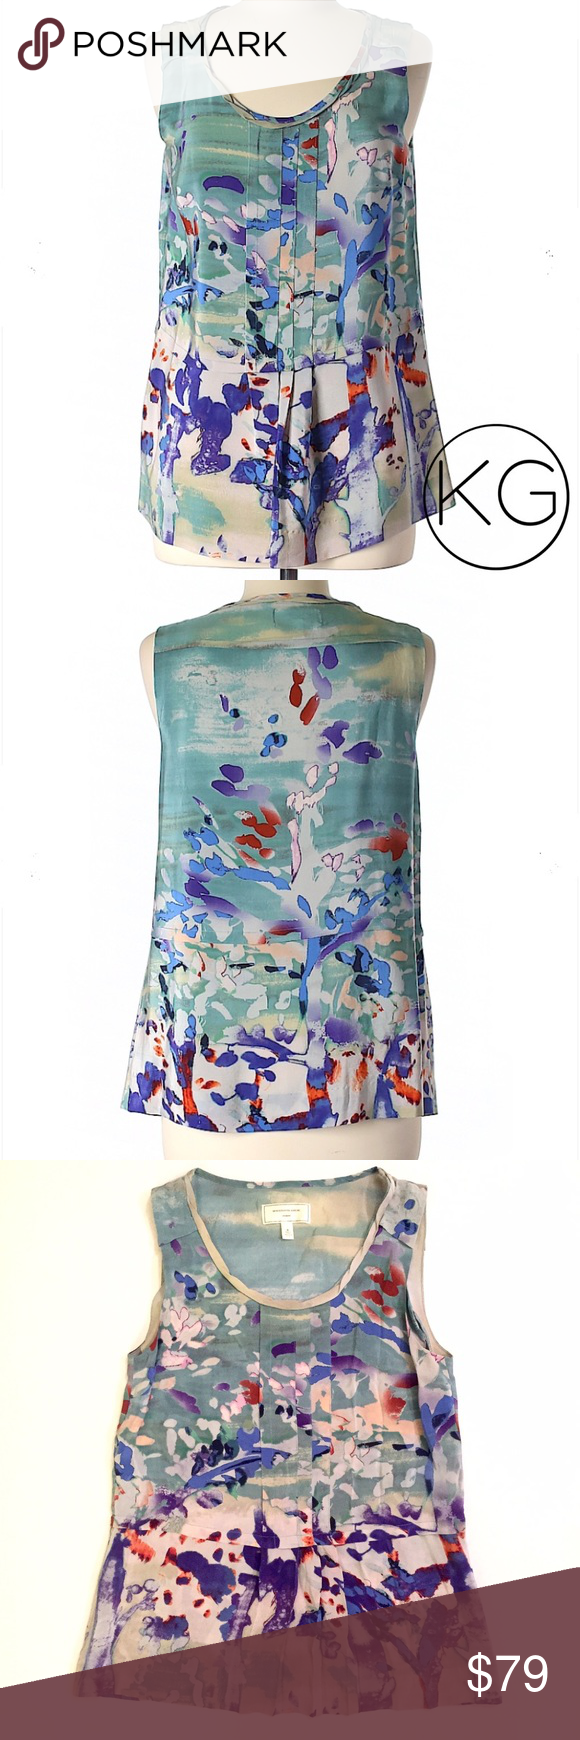 """Anthropologie Watercolor Print Silk Blouse In excellent pre-owned condition! •Moulinette Soeurs •Women's size 0 •100% Silk •17"""" from underarm to underarm, 25"""" from shoulder to hem •Sleeveless, scoop neck, printed silk  •Retail $208 no trades nor lowball offers Thank you for shopping in my closet! Anthropologie Tops Tank Tops"""